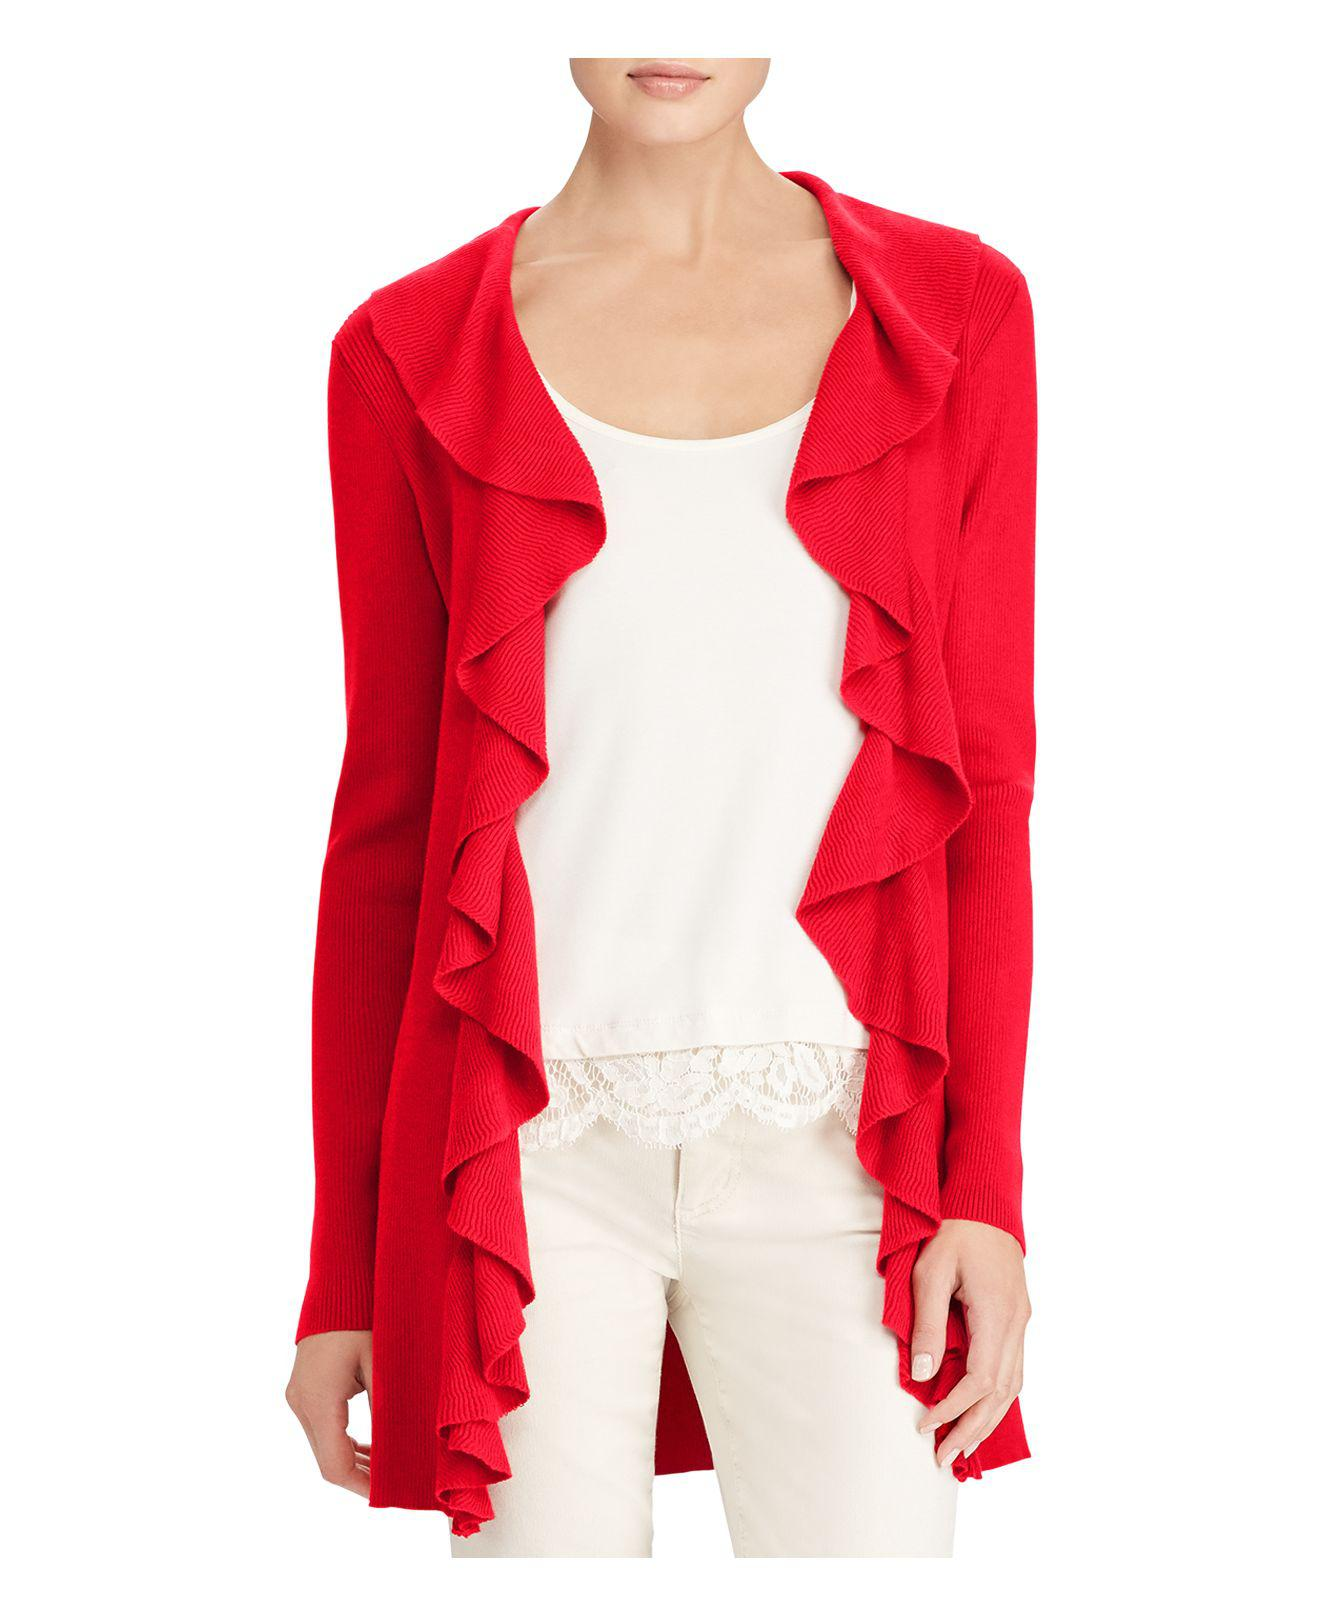 Ralph lauren Lauren Ruffle Open Front Duster Cardigan in Red | Lyst